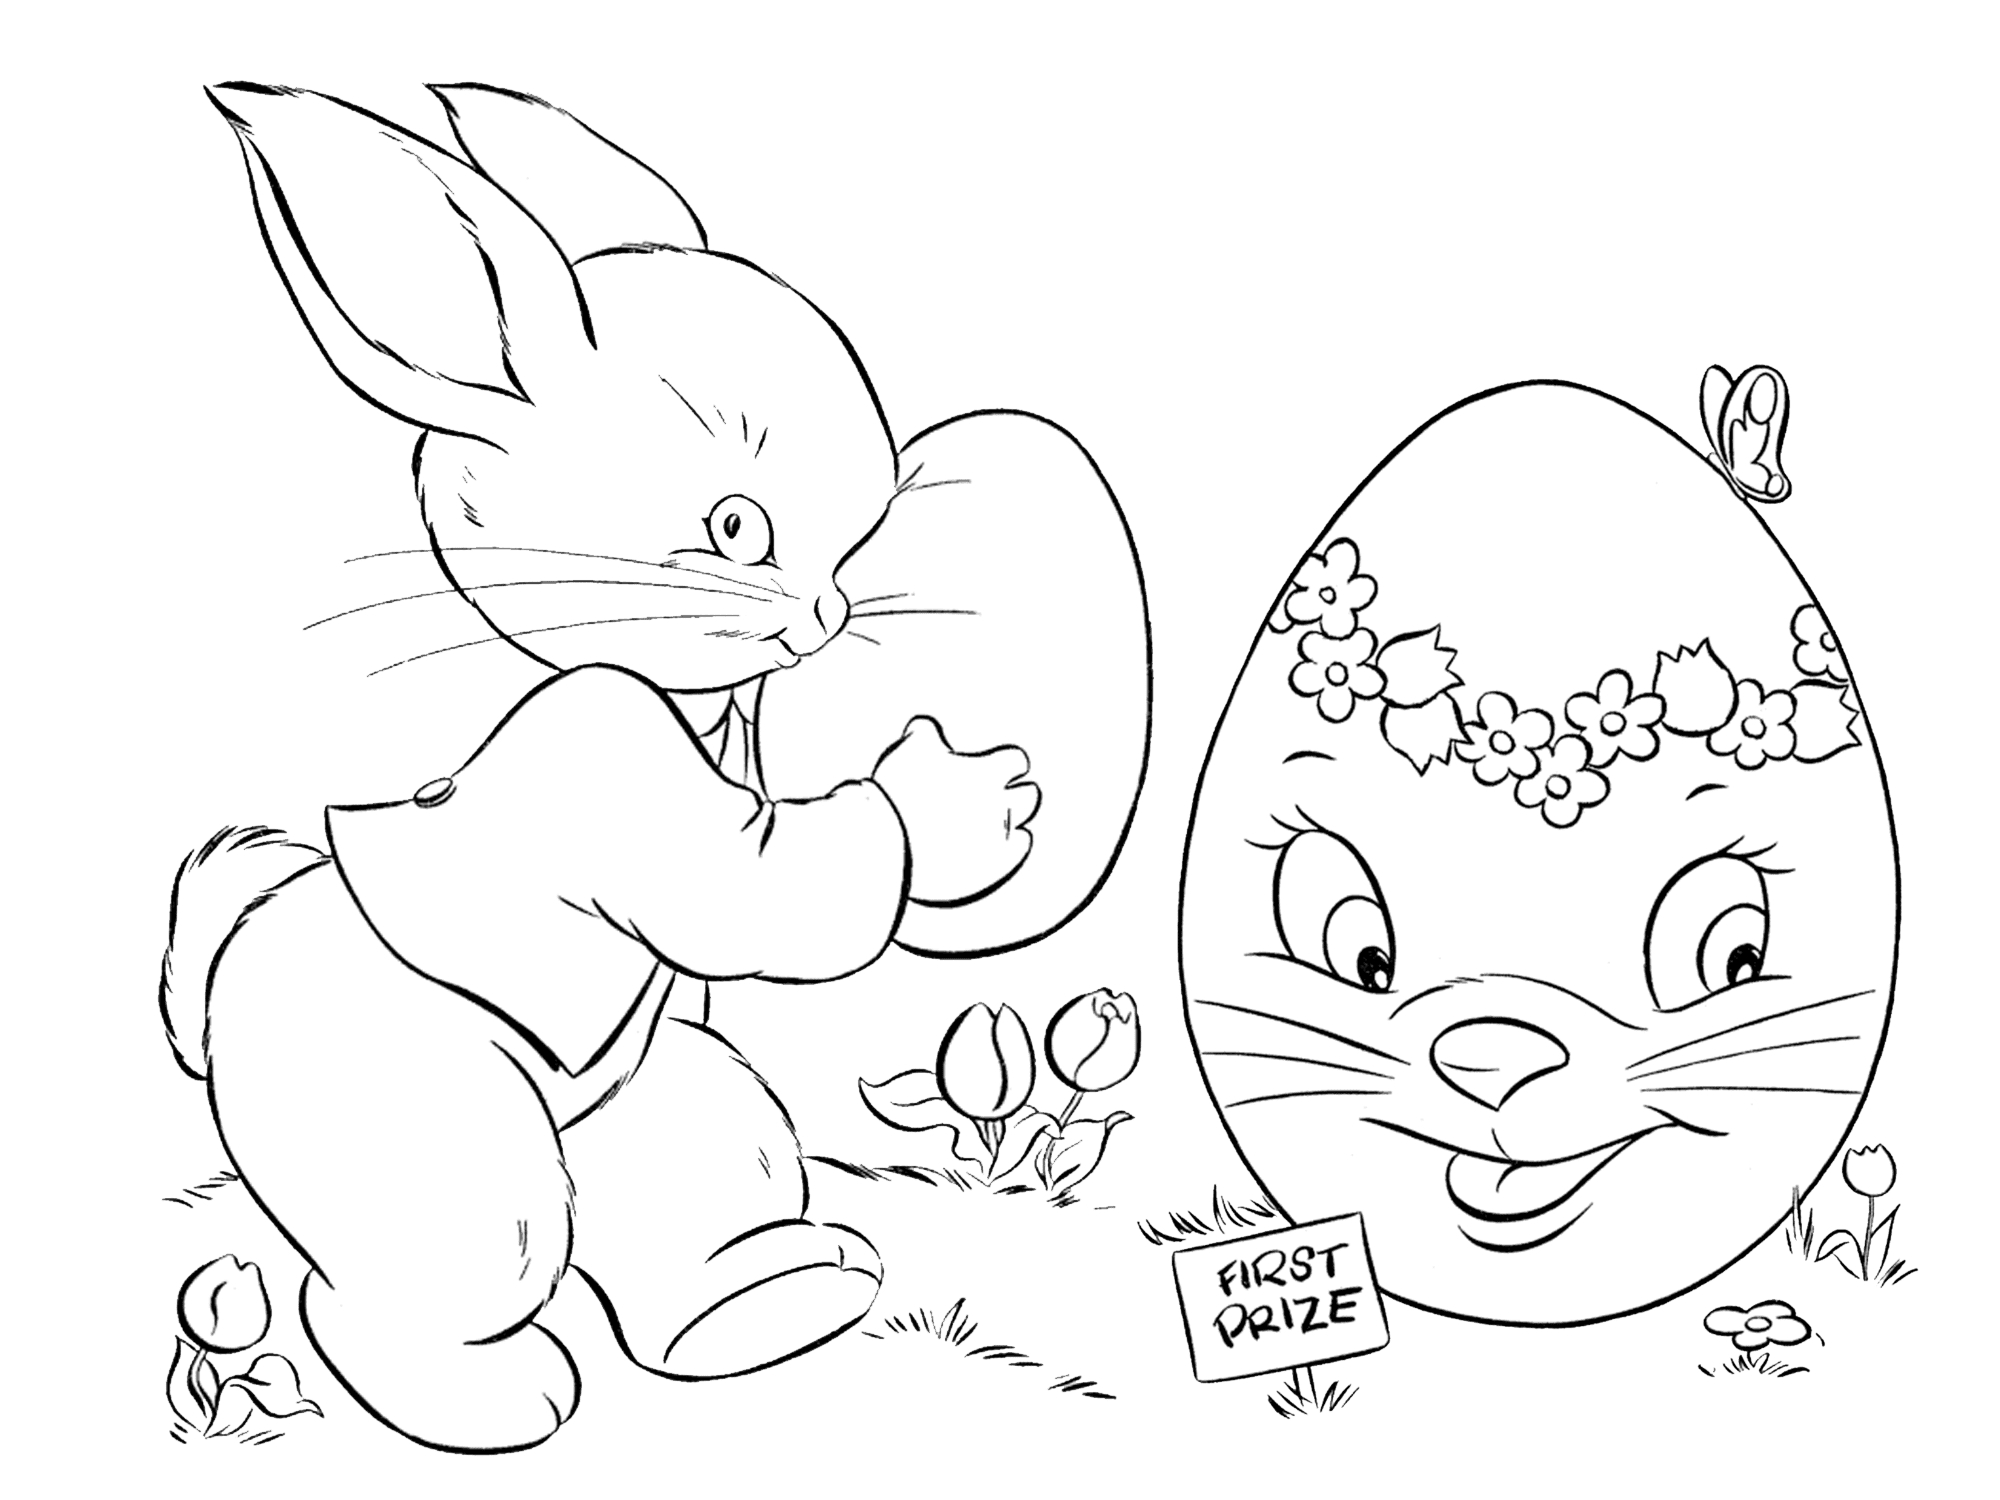 7 Places For Free, Printable Easter Egg Coloring Pages - Free Easter Color Pages Printable